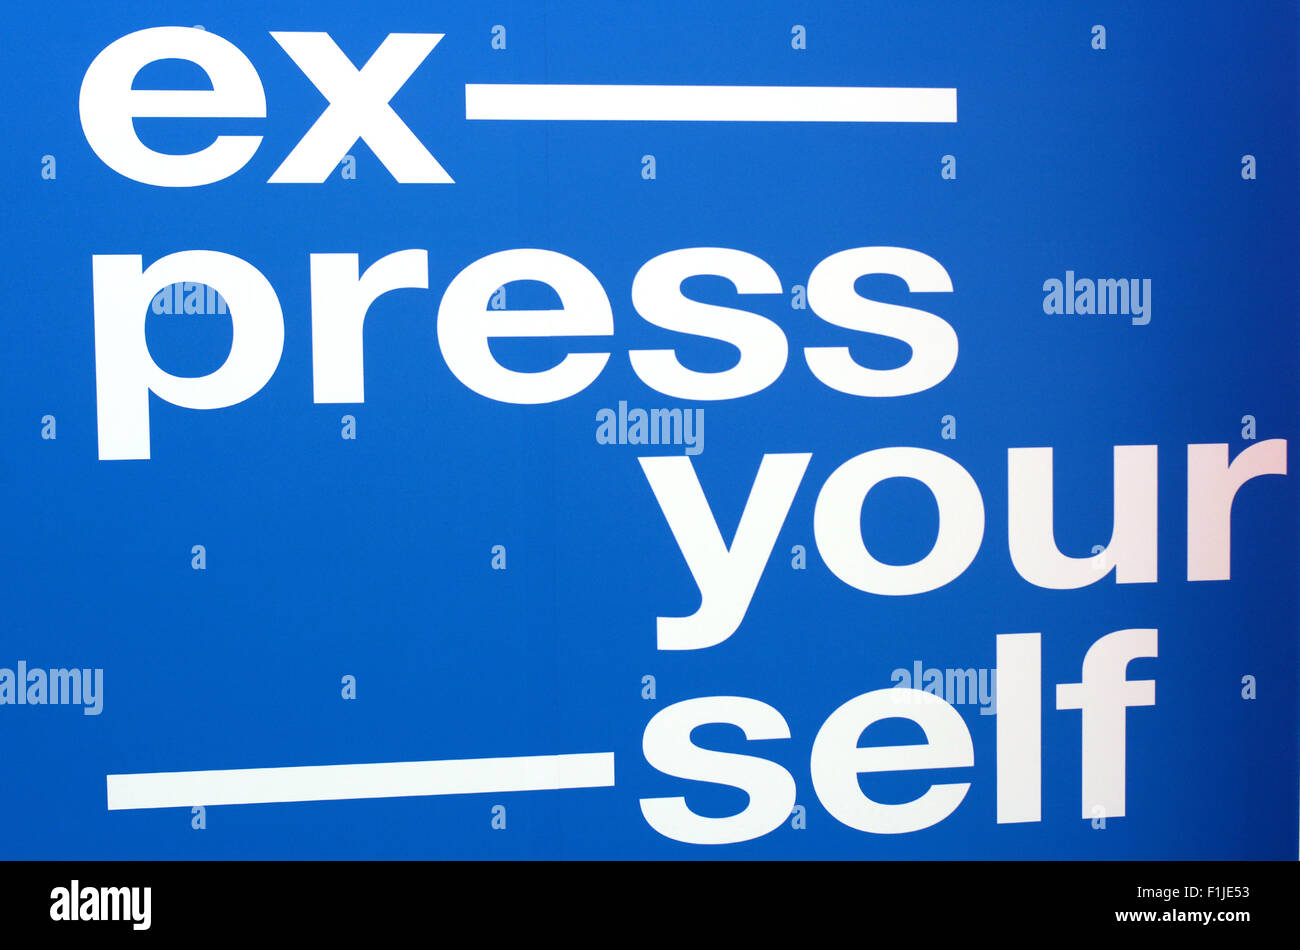 Express yourself text.Text write on wall. - Stock Image